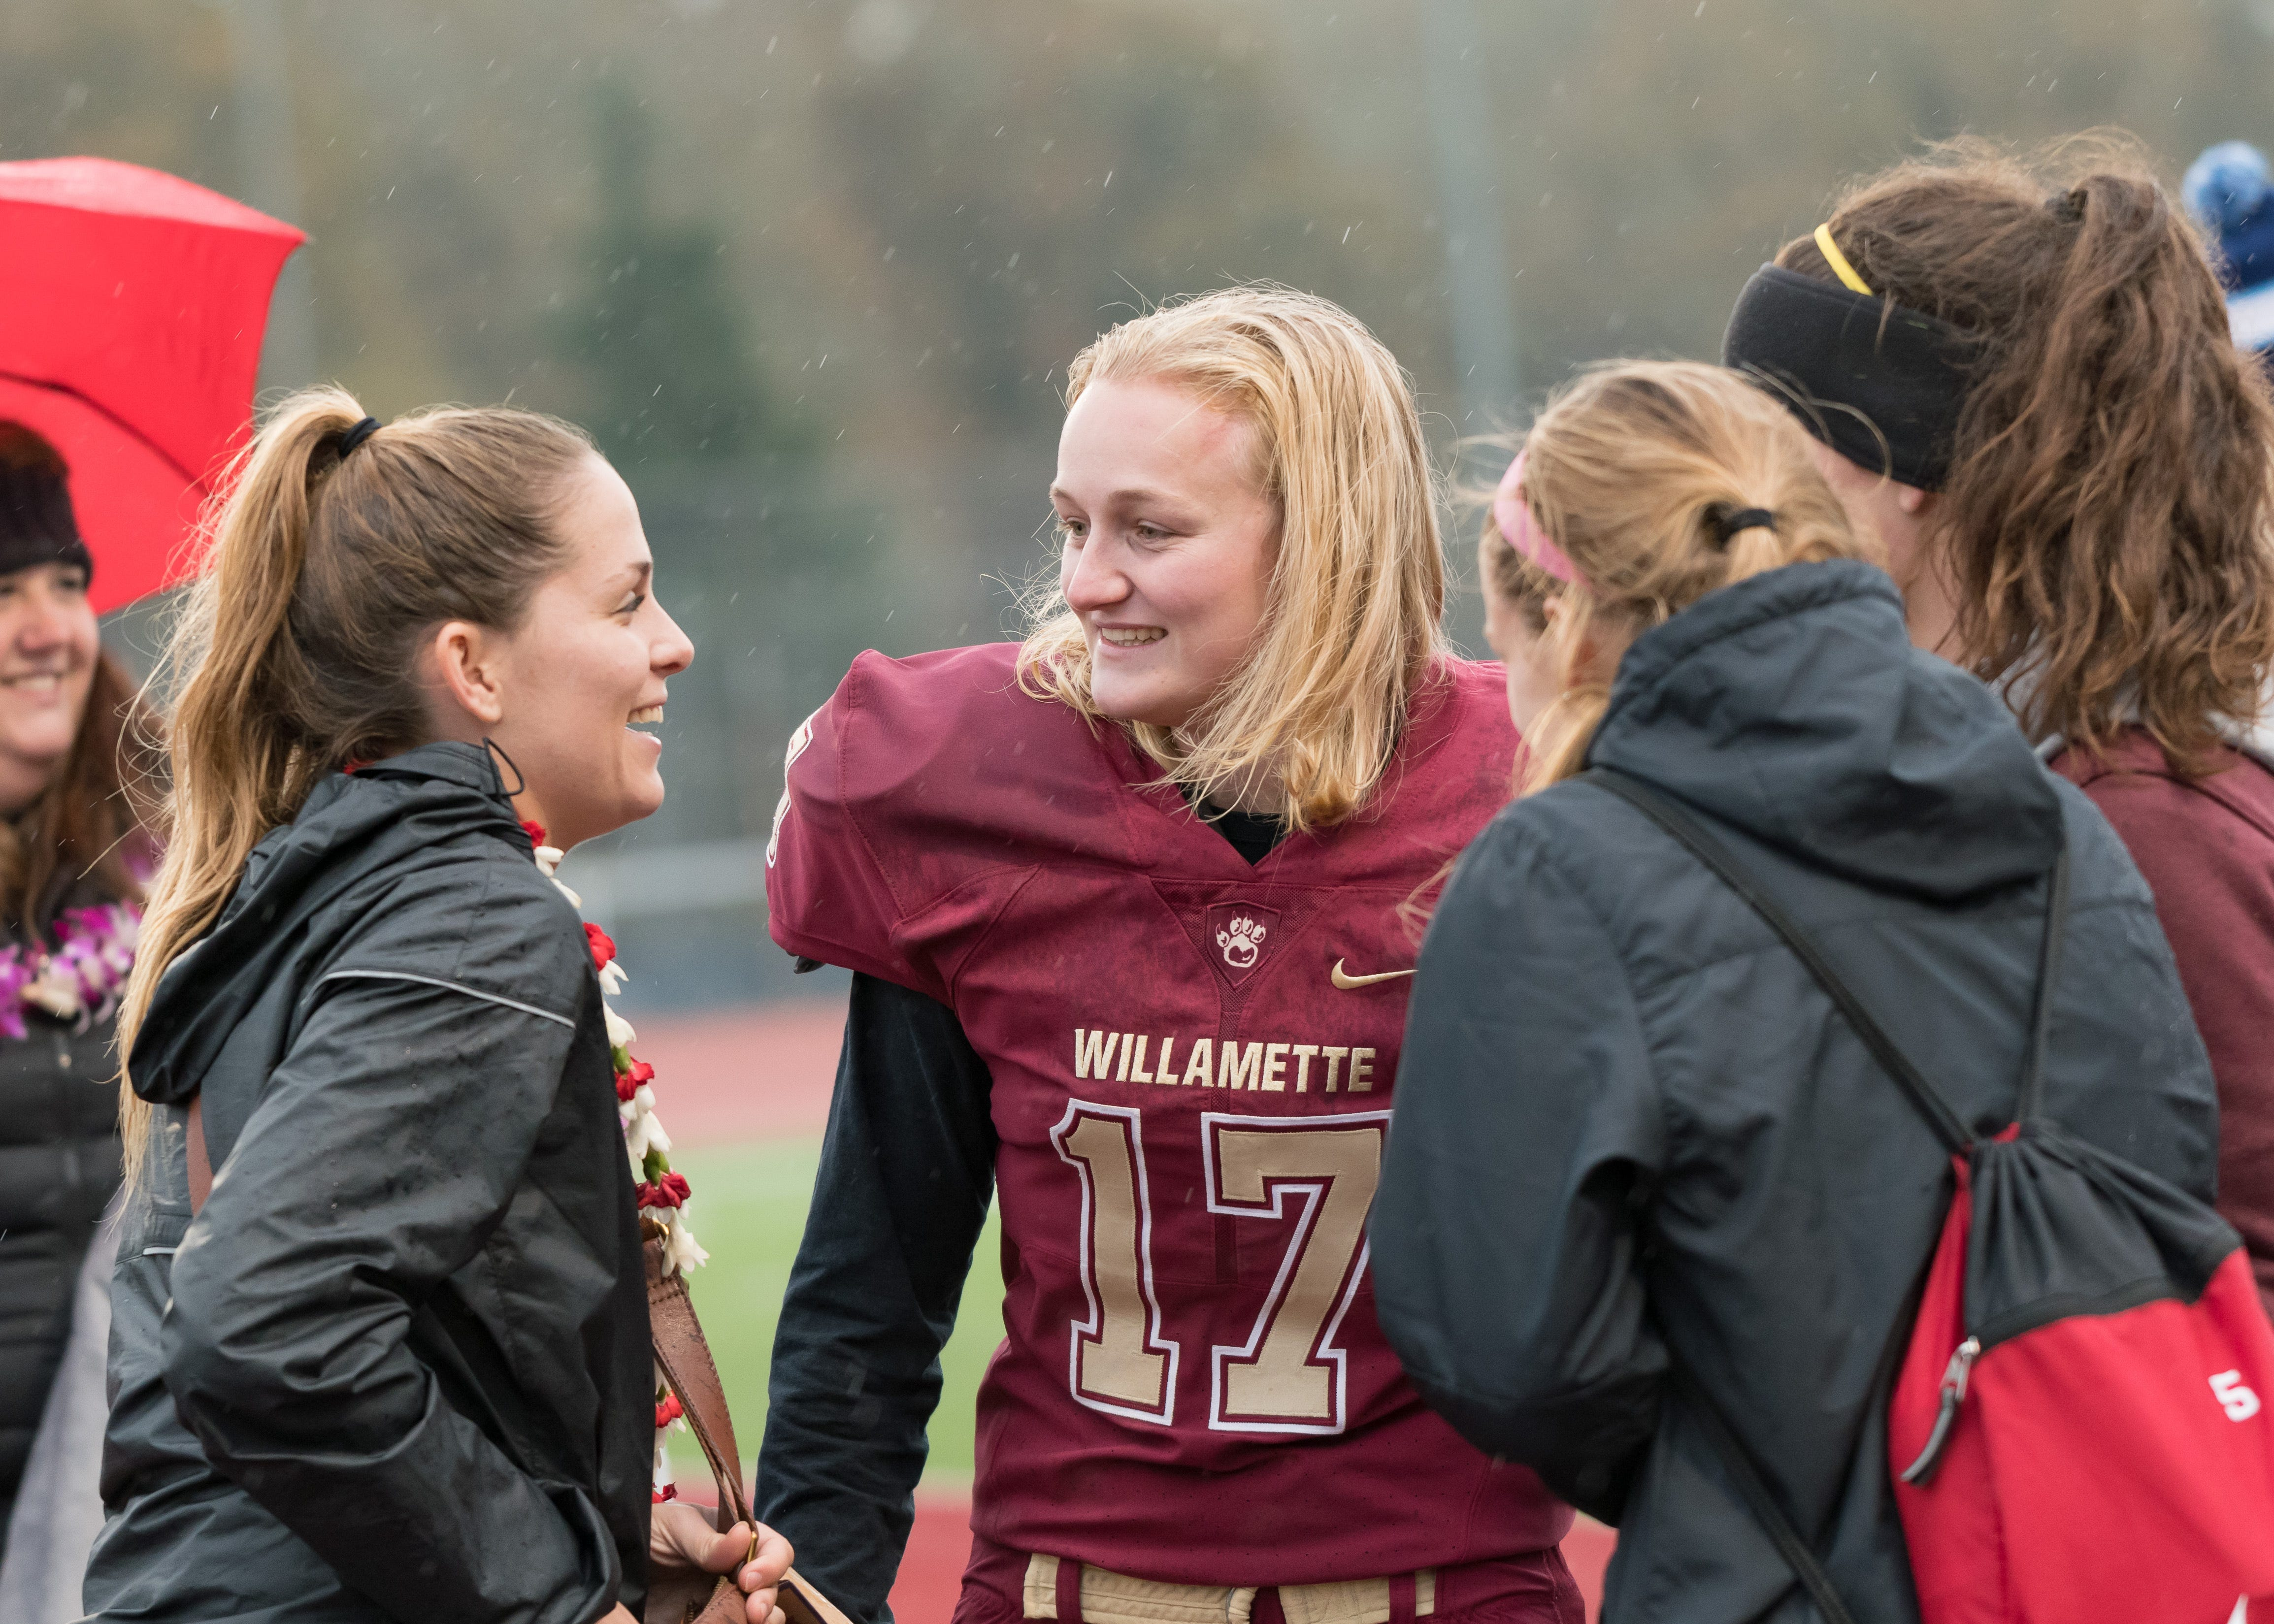 Liz Heaston first woman to play and score in a college football game